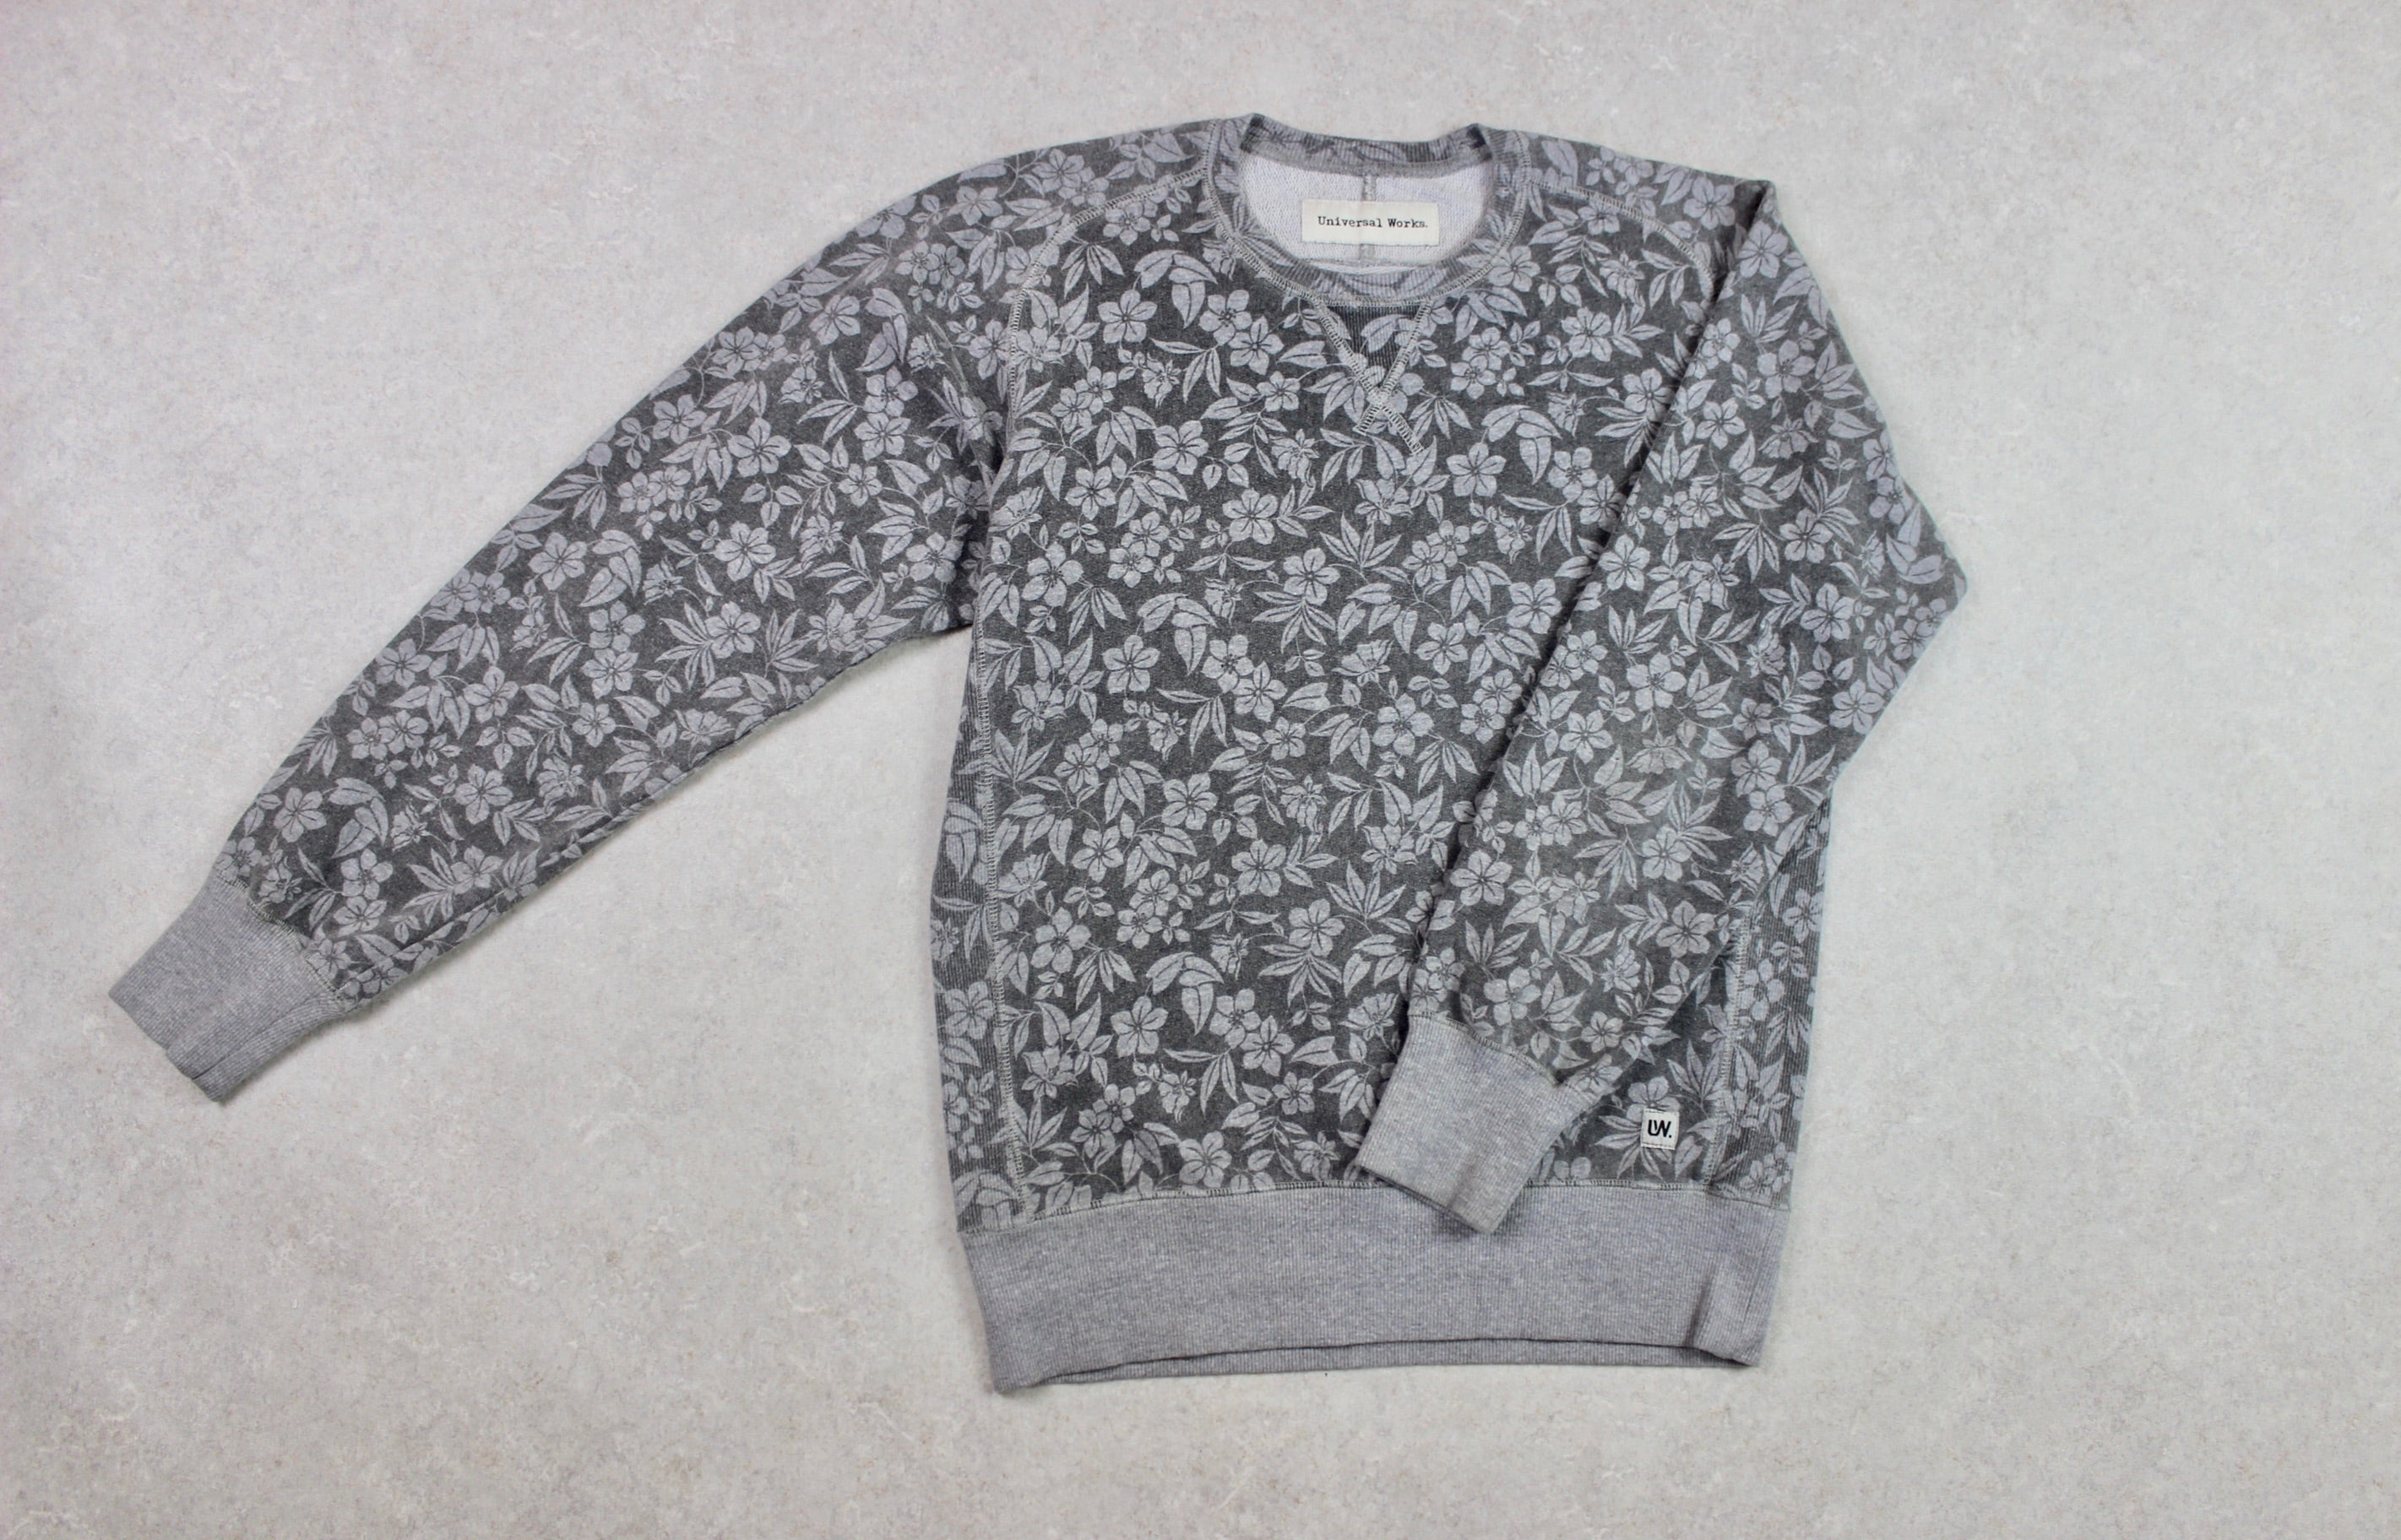 Universal Works - Sweatshirt Jumper - Grey - Small